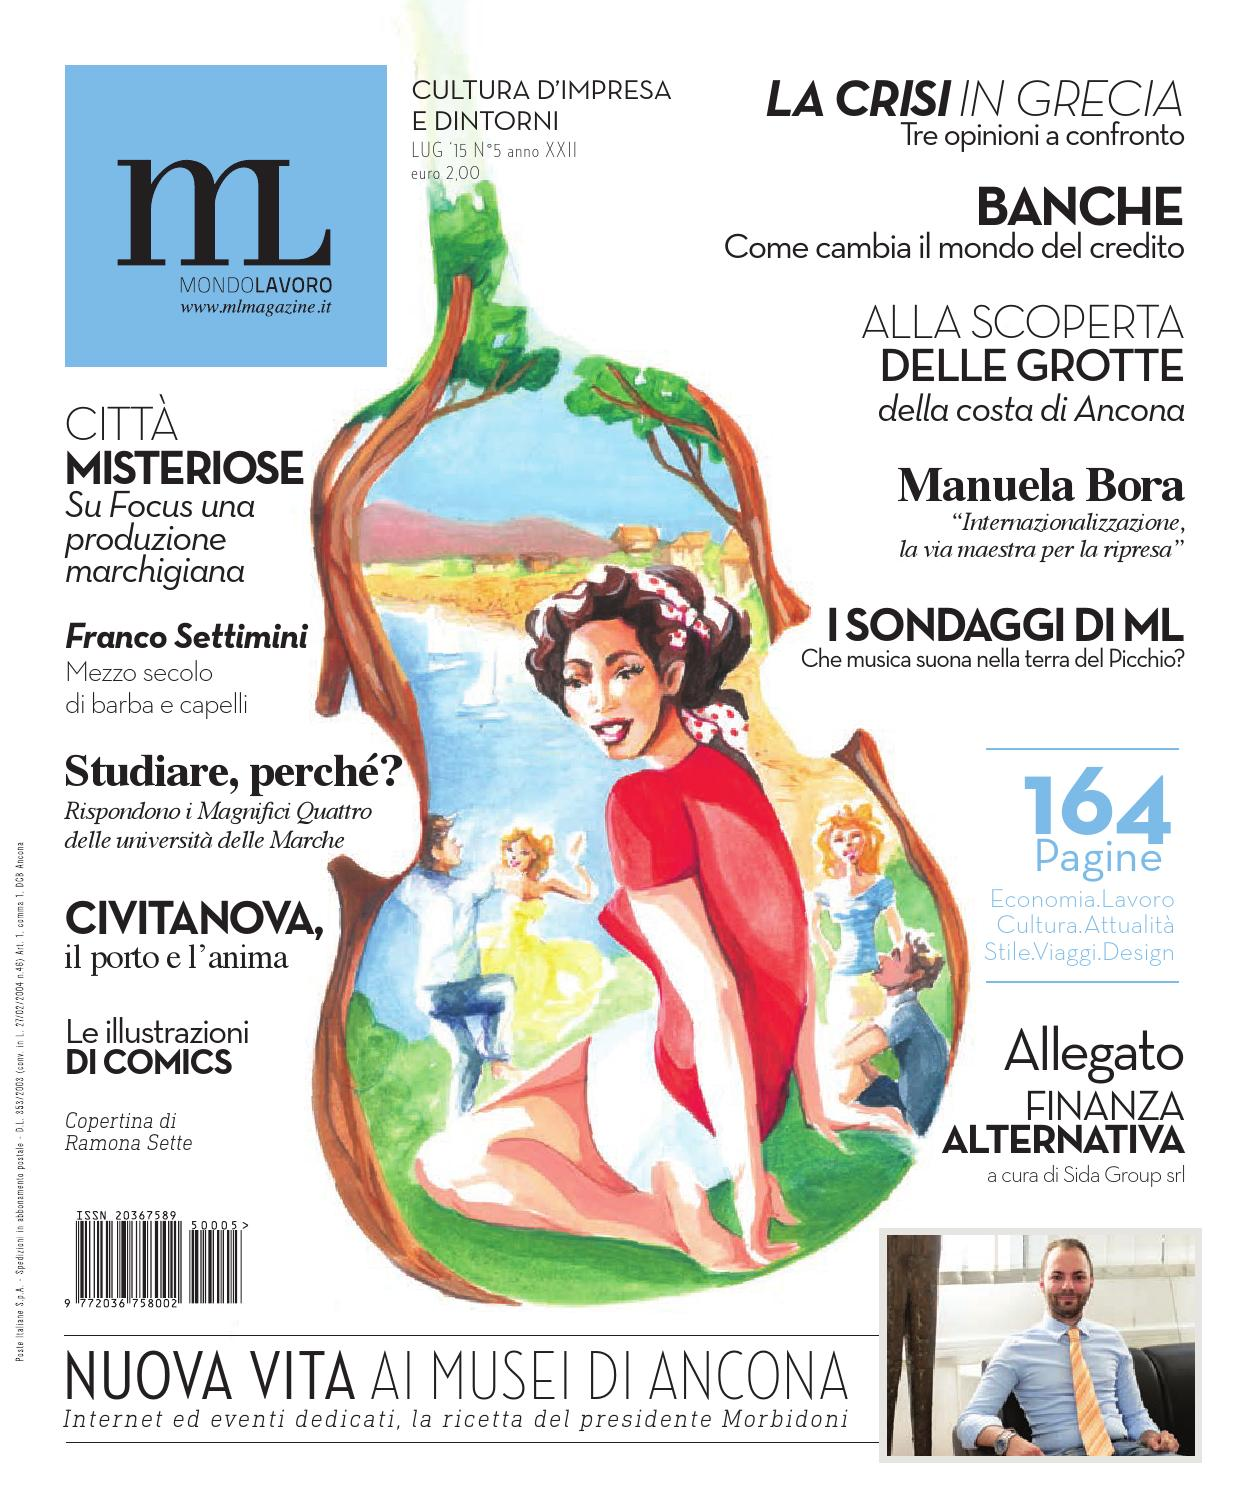 Ml5lug2015 web 2 by Marco Palumbo - issuu c7b934ec29a